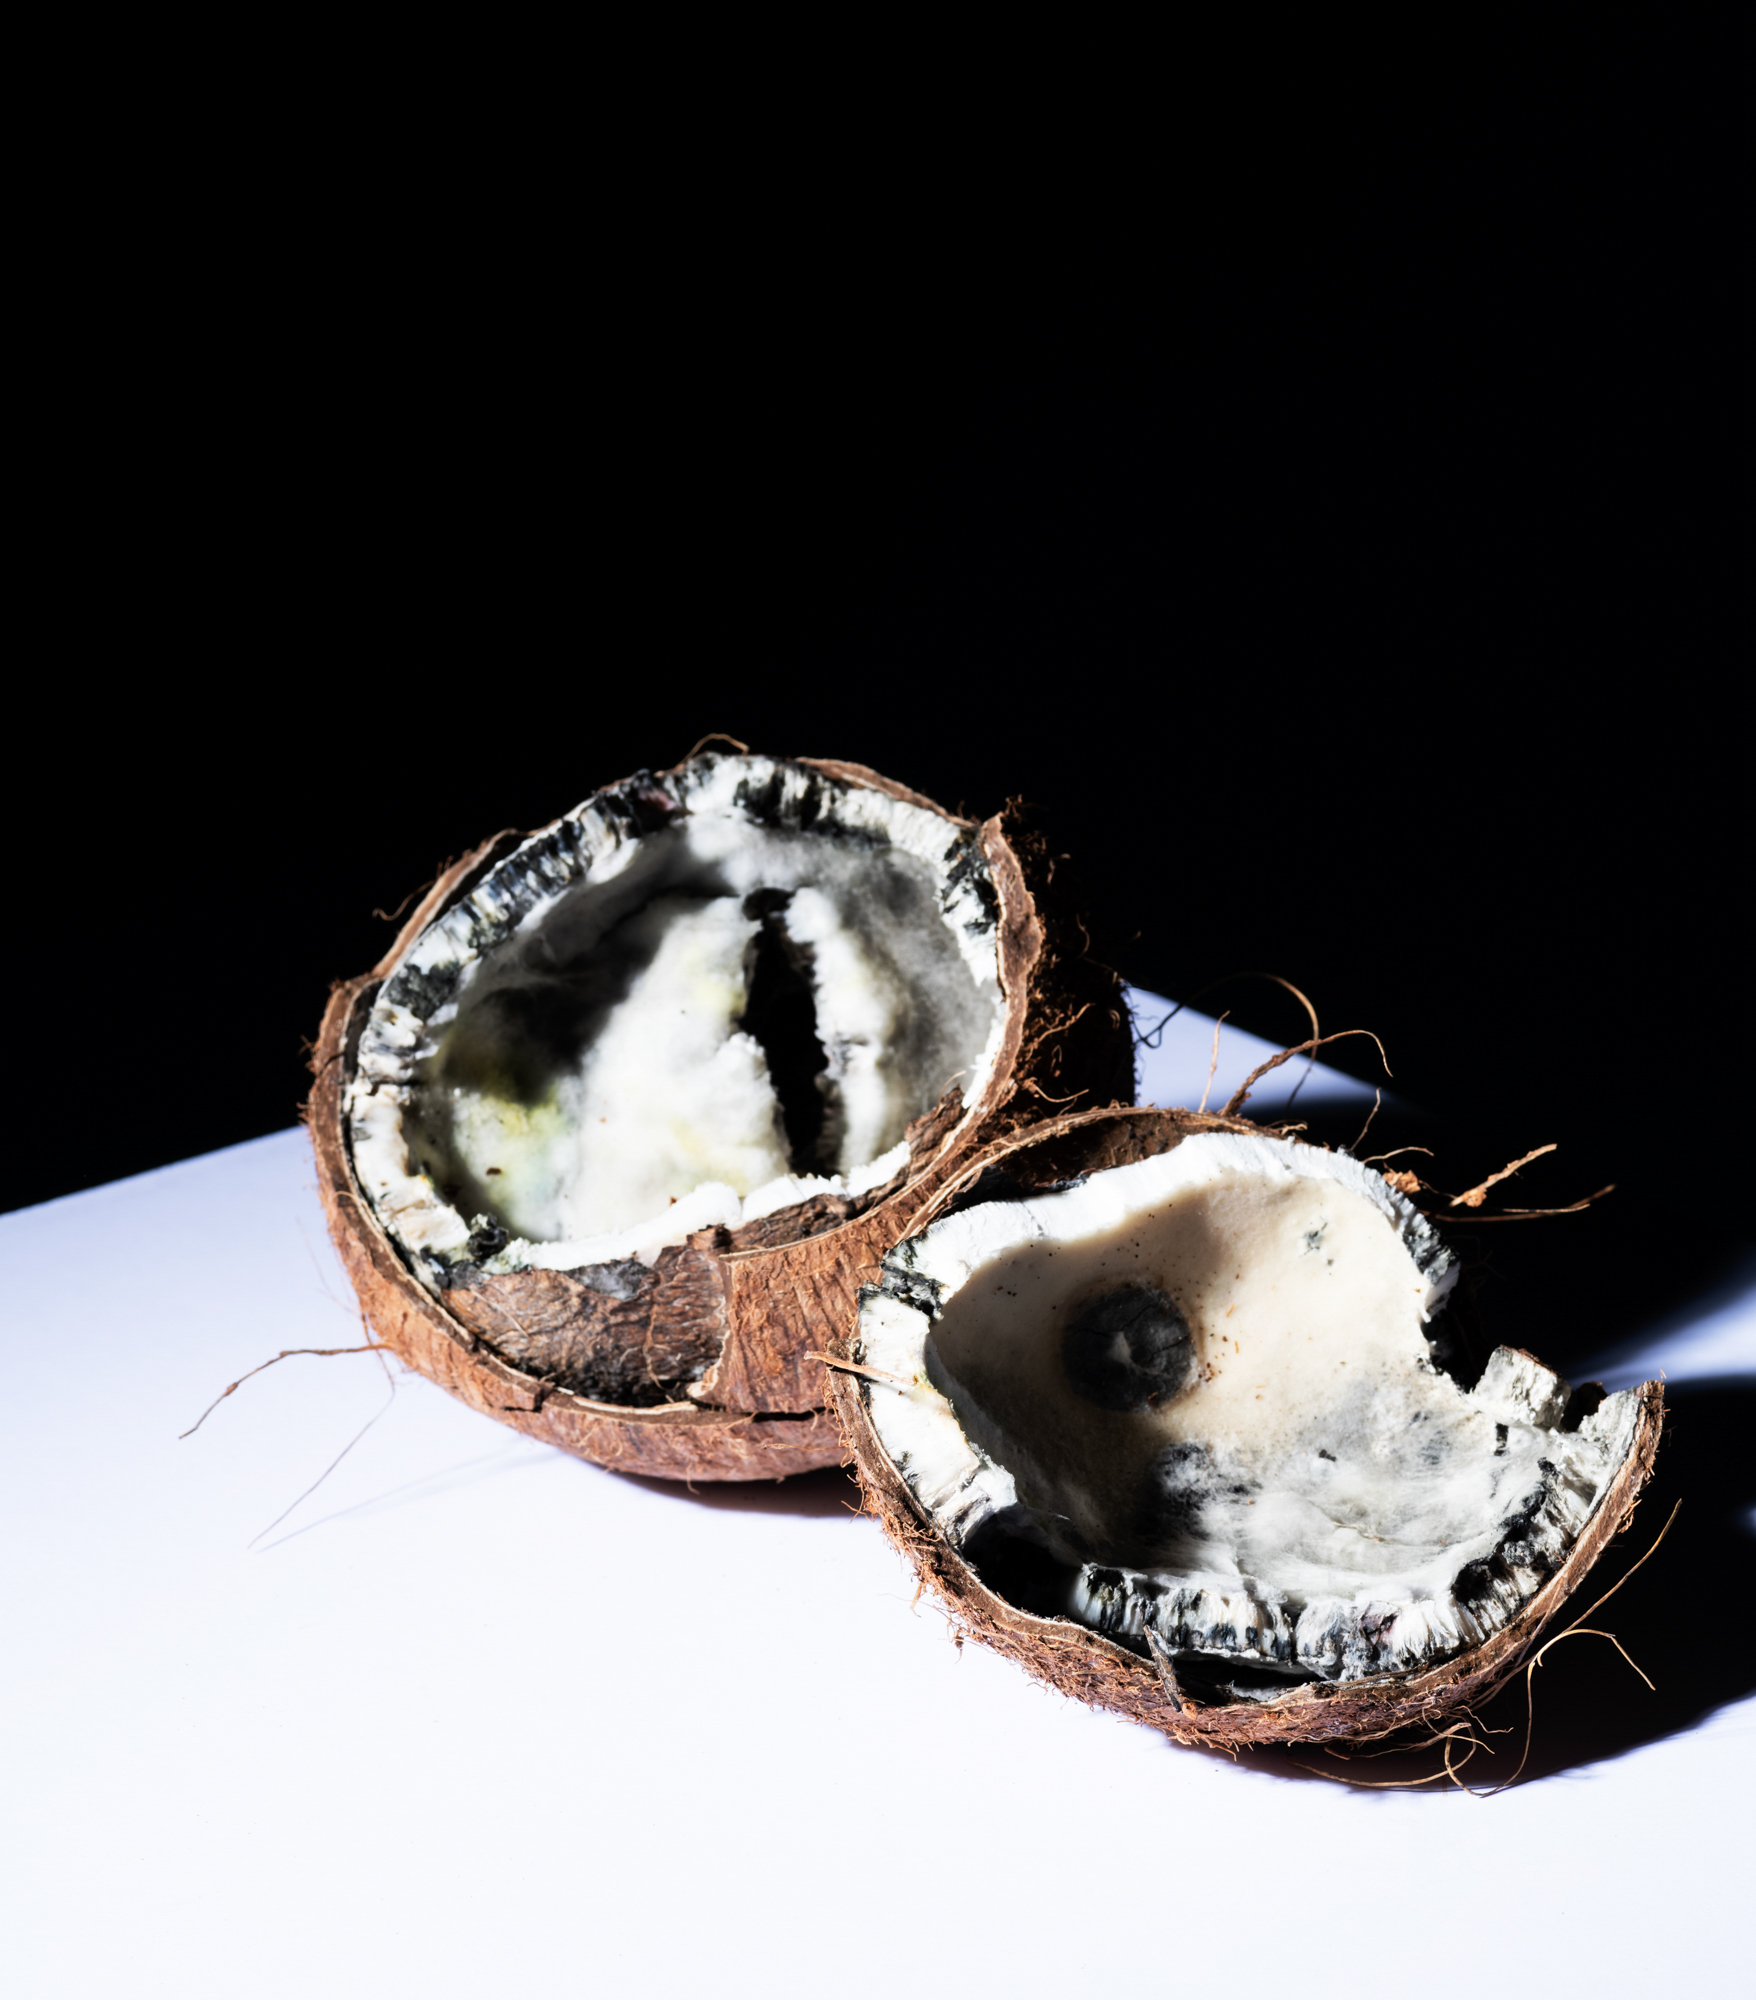 A split-open coconut.